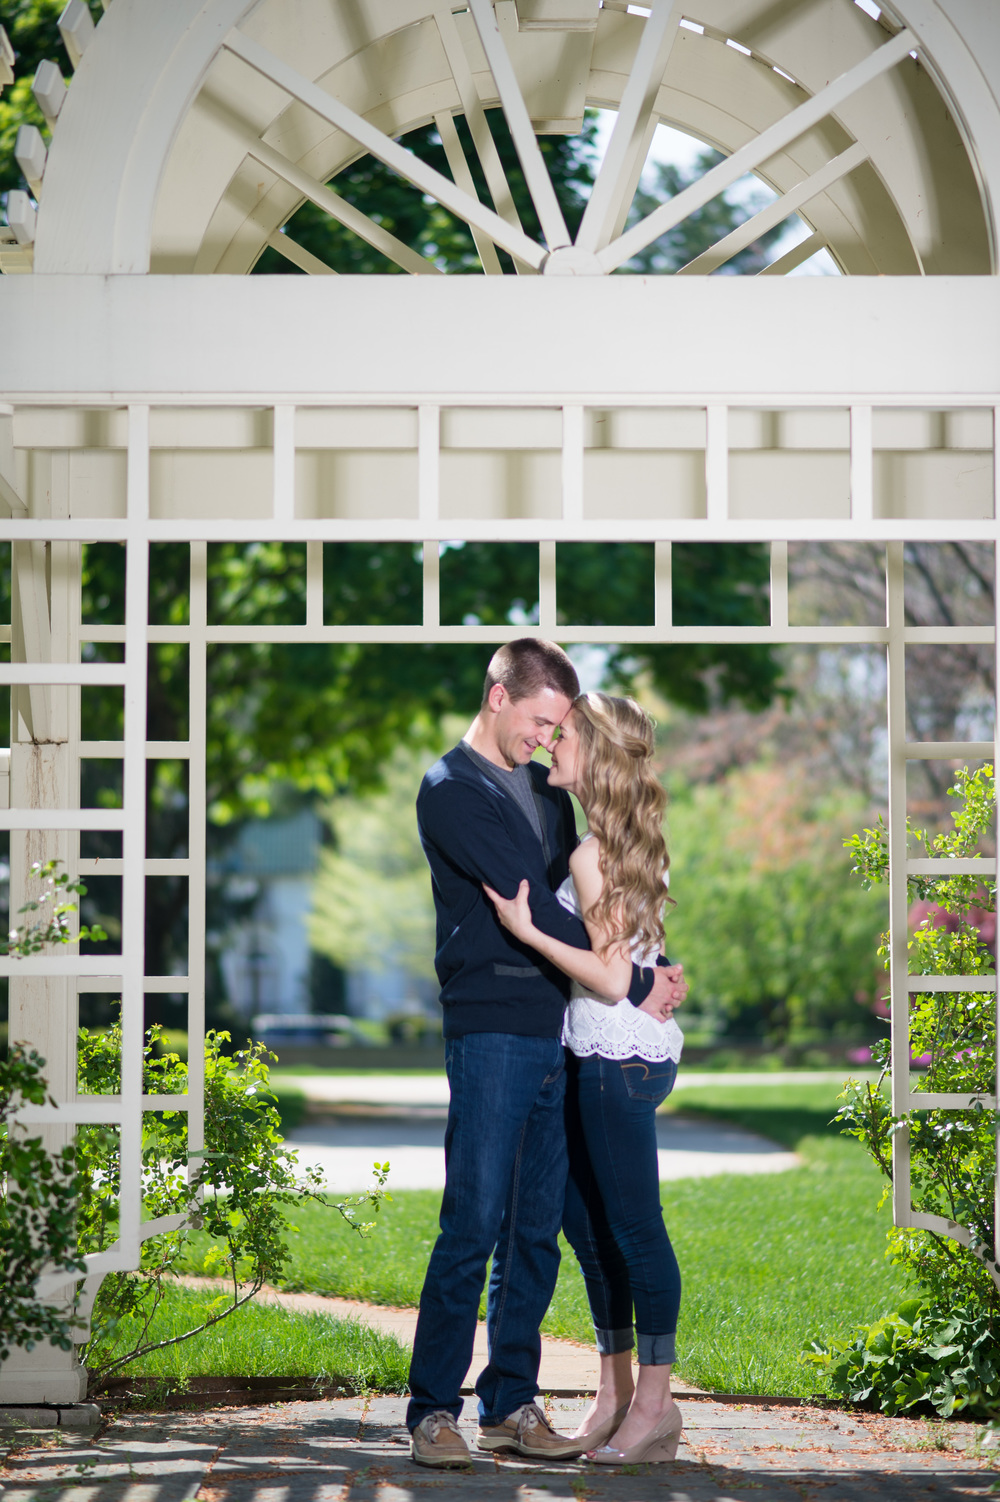 Angela&CurtisEngagement-138.jpg